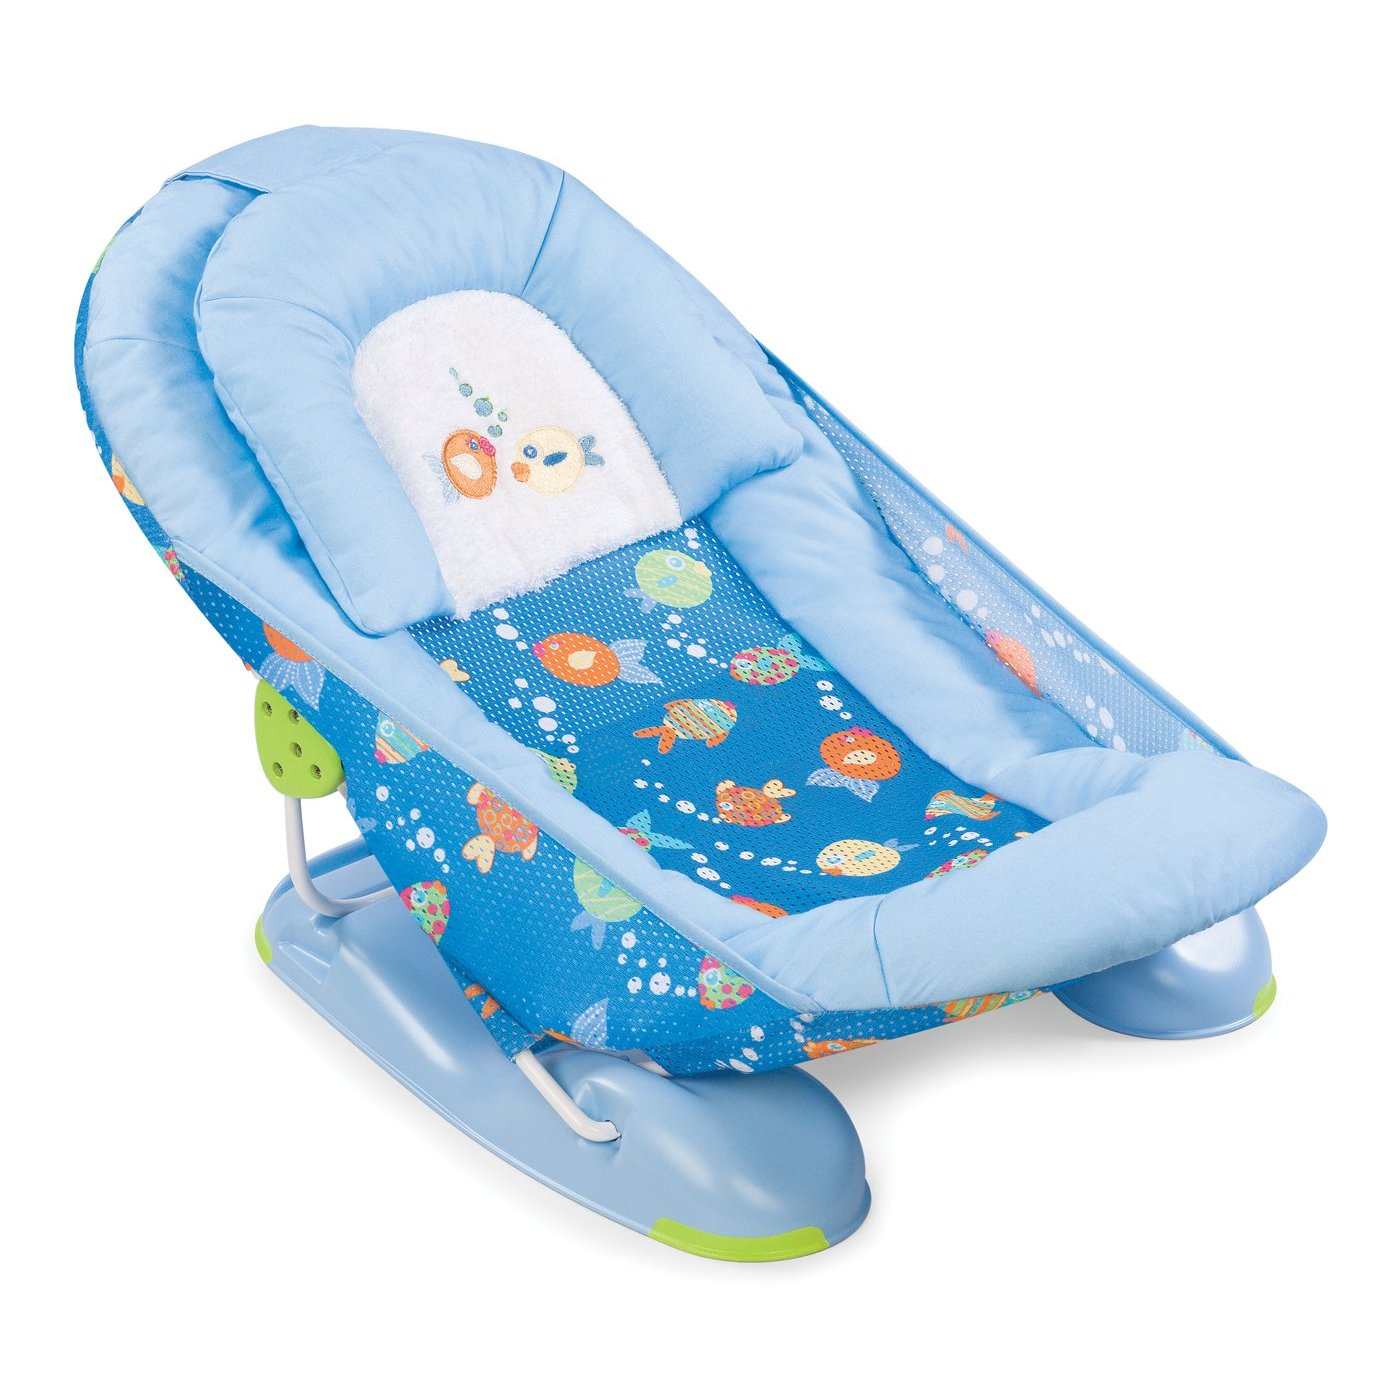 Moving Sale: SOLD - Brand New Summer Infant Bath Seat $10